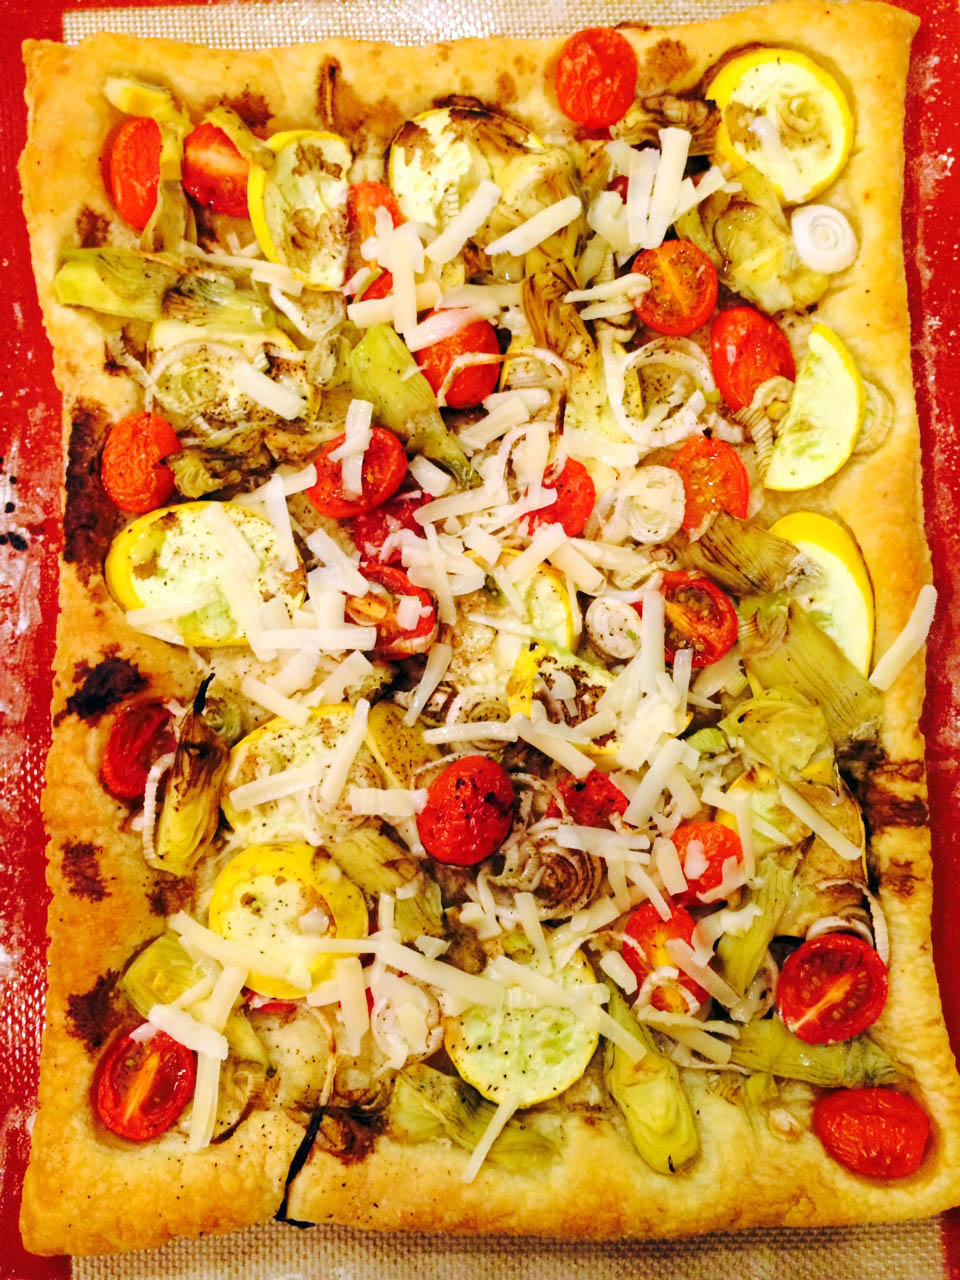 Roasted Vegetable Tart - Vegetarian Dinner Party Menu, Shiso Kitchen